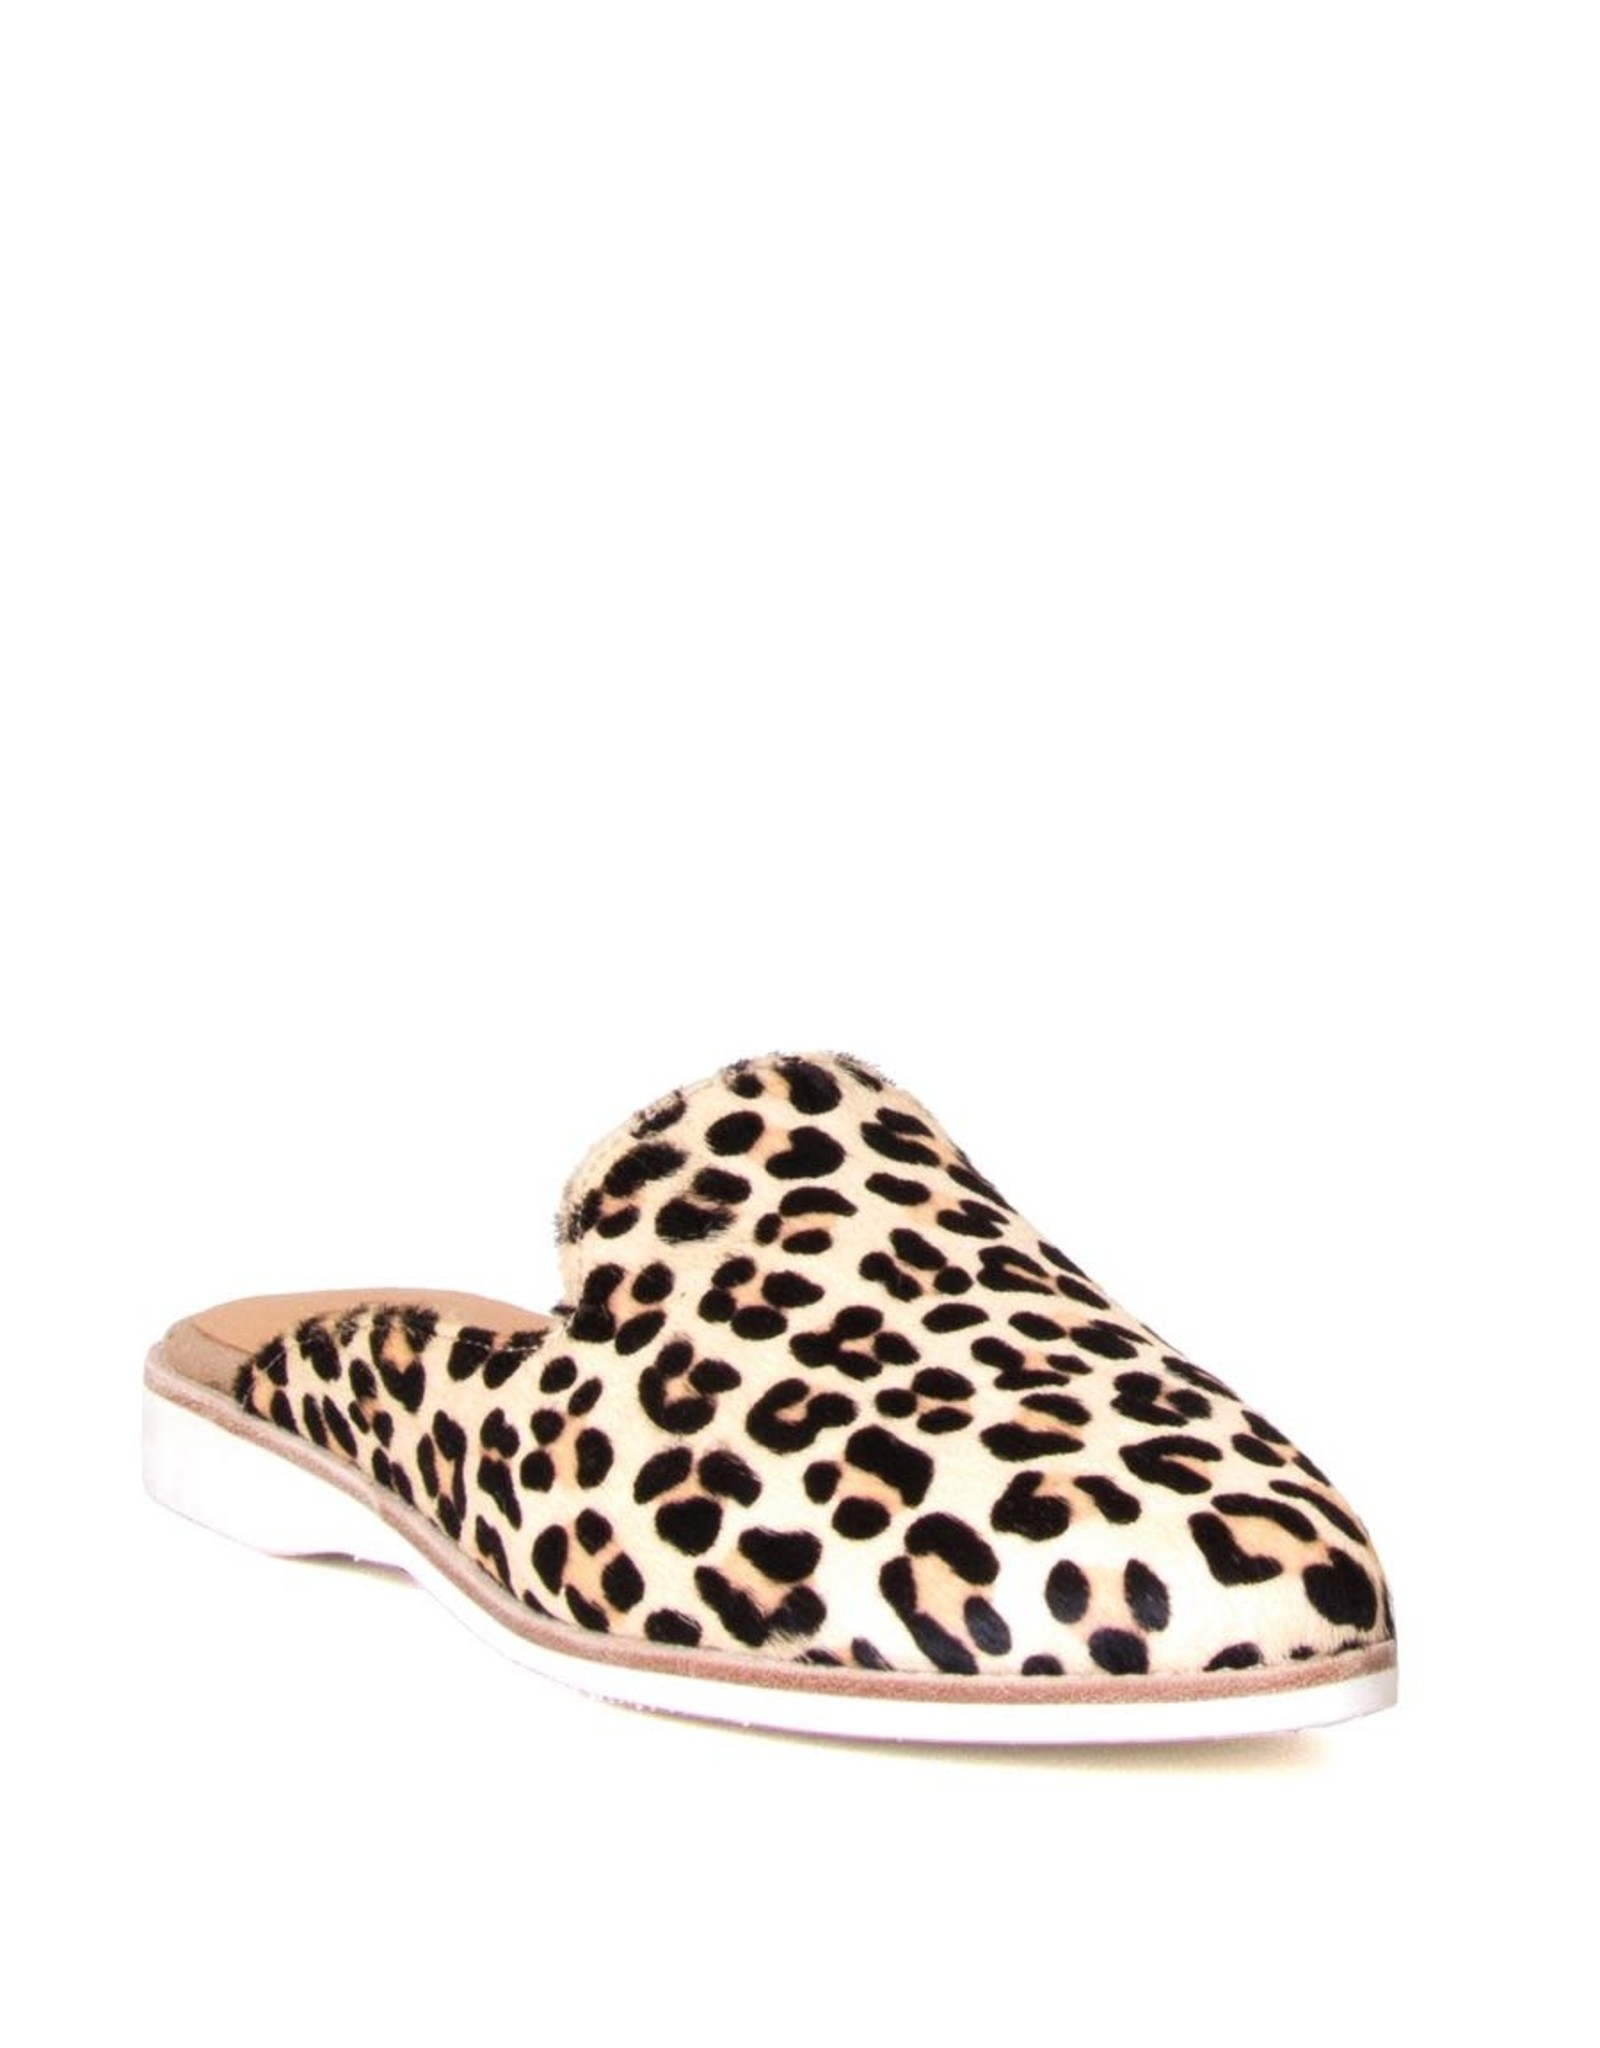 Rollie Shoes Rollie - Madison Mule (camel leopard)